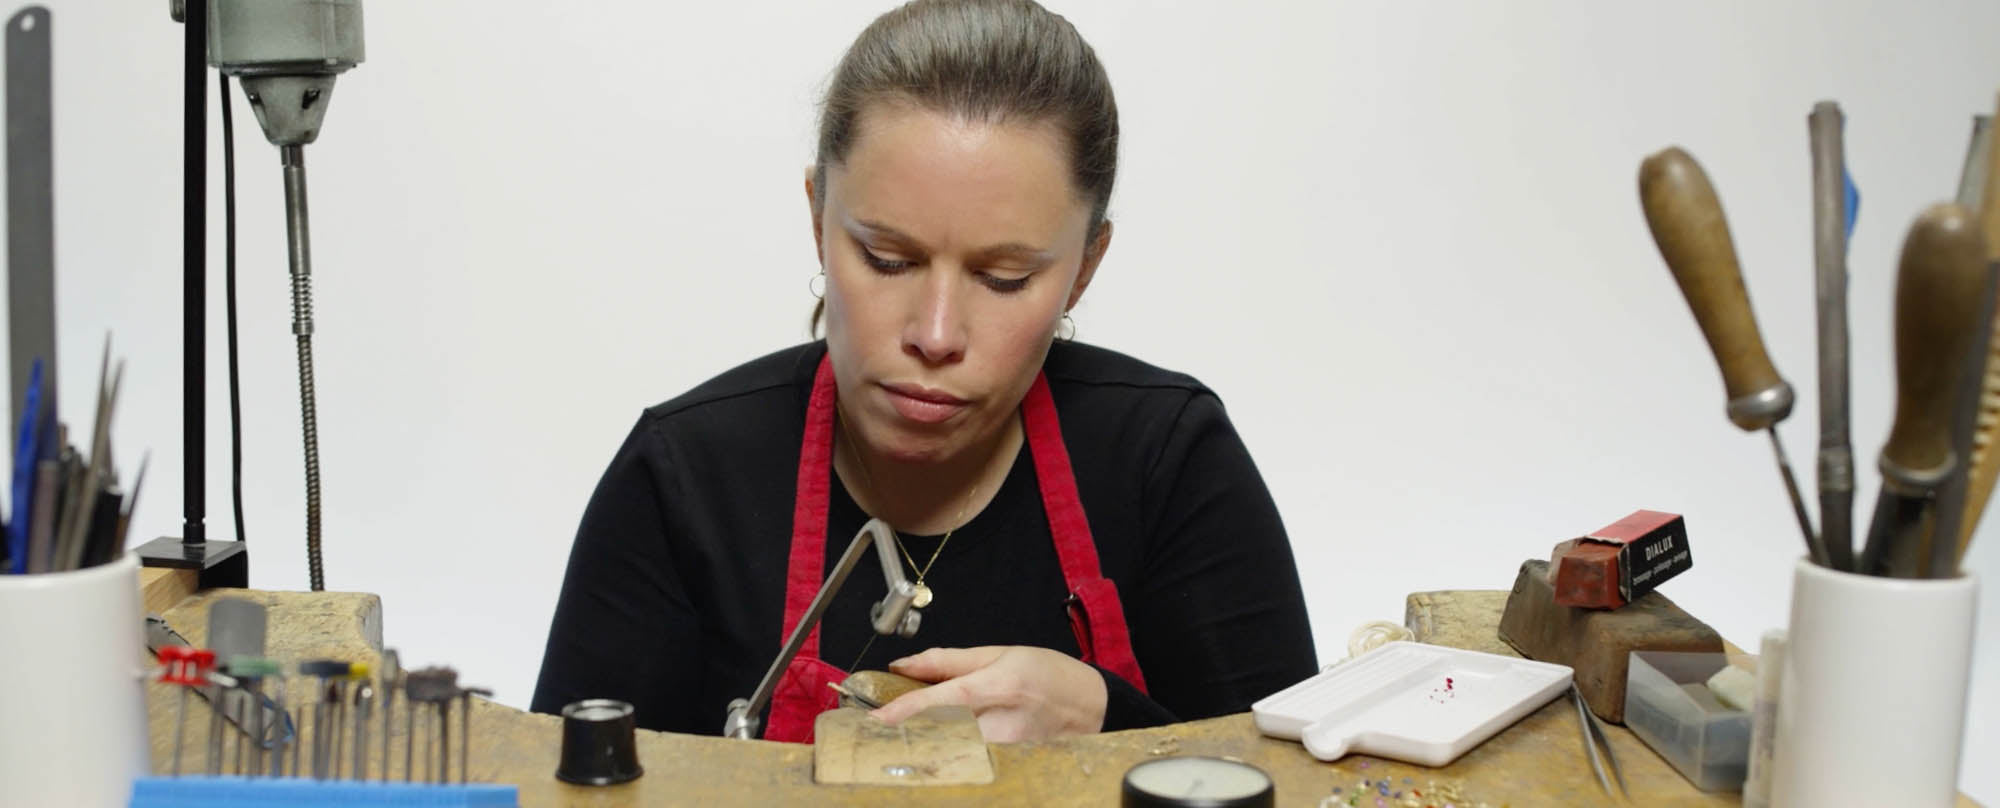 Bespoke Jewellery being made at the workshop by hand